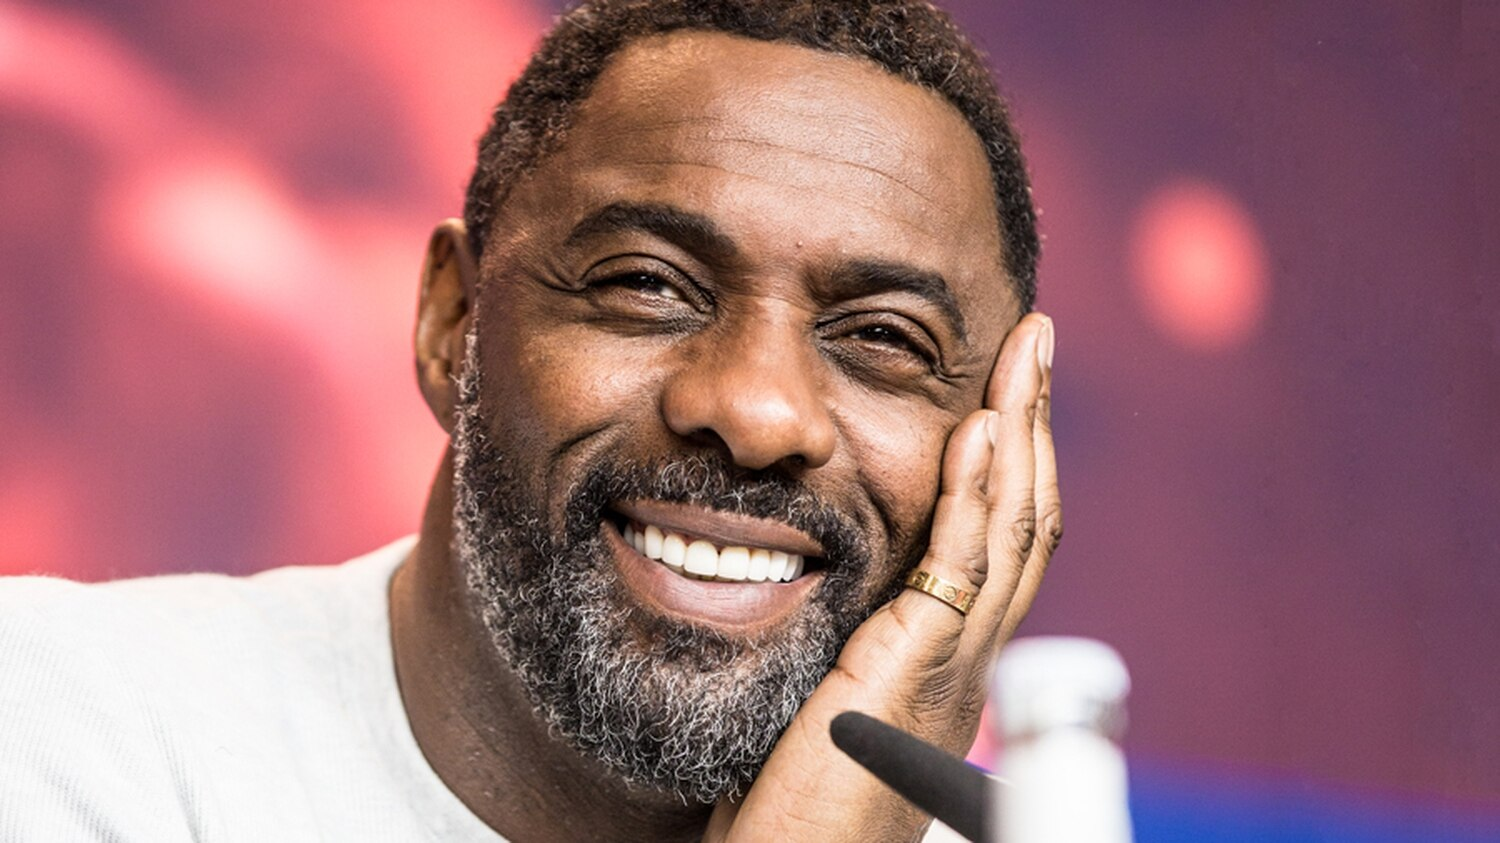 Why Isn't Idris Elba Putting You to Sleep Like He is For Us?